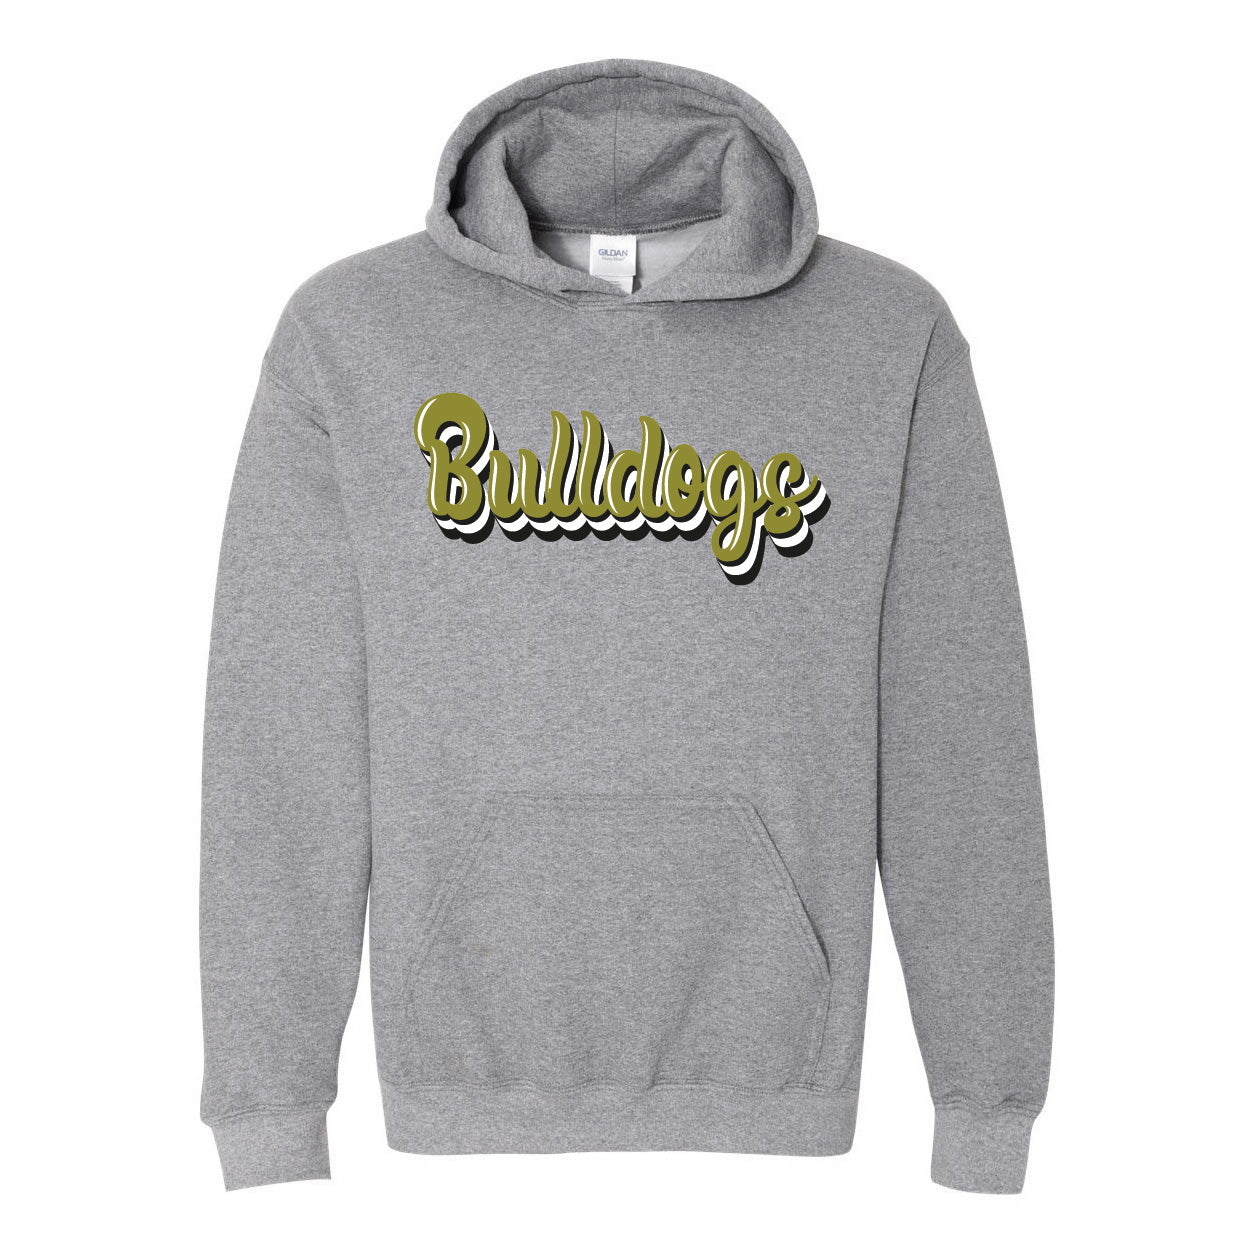 Clyde Bulldogs - Retro Hoodie